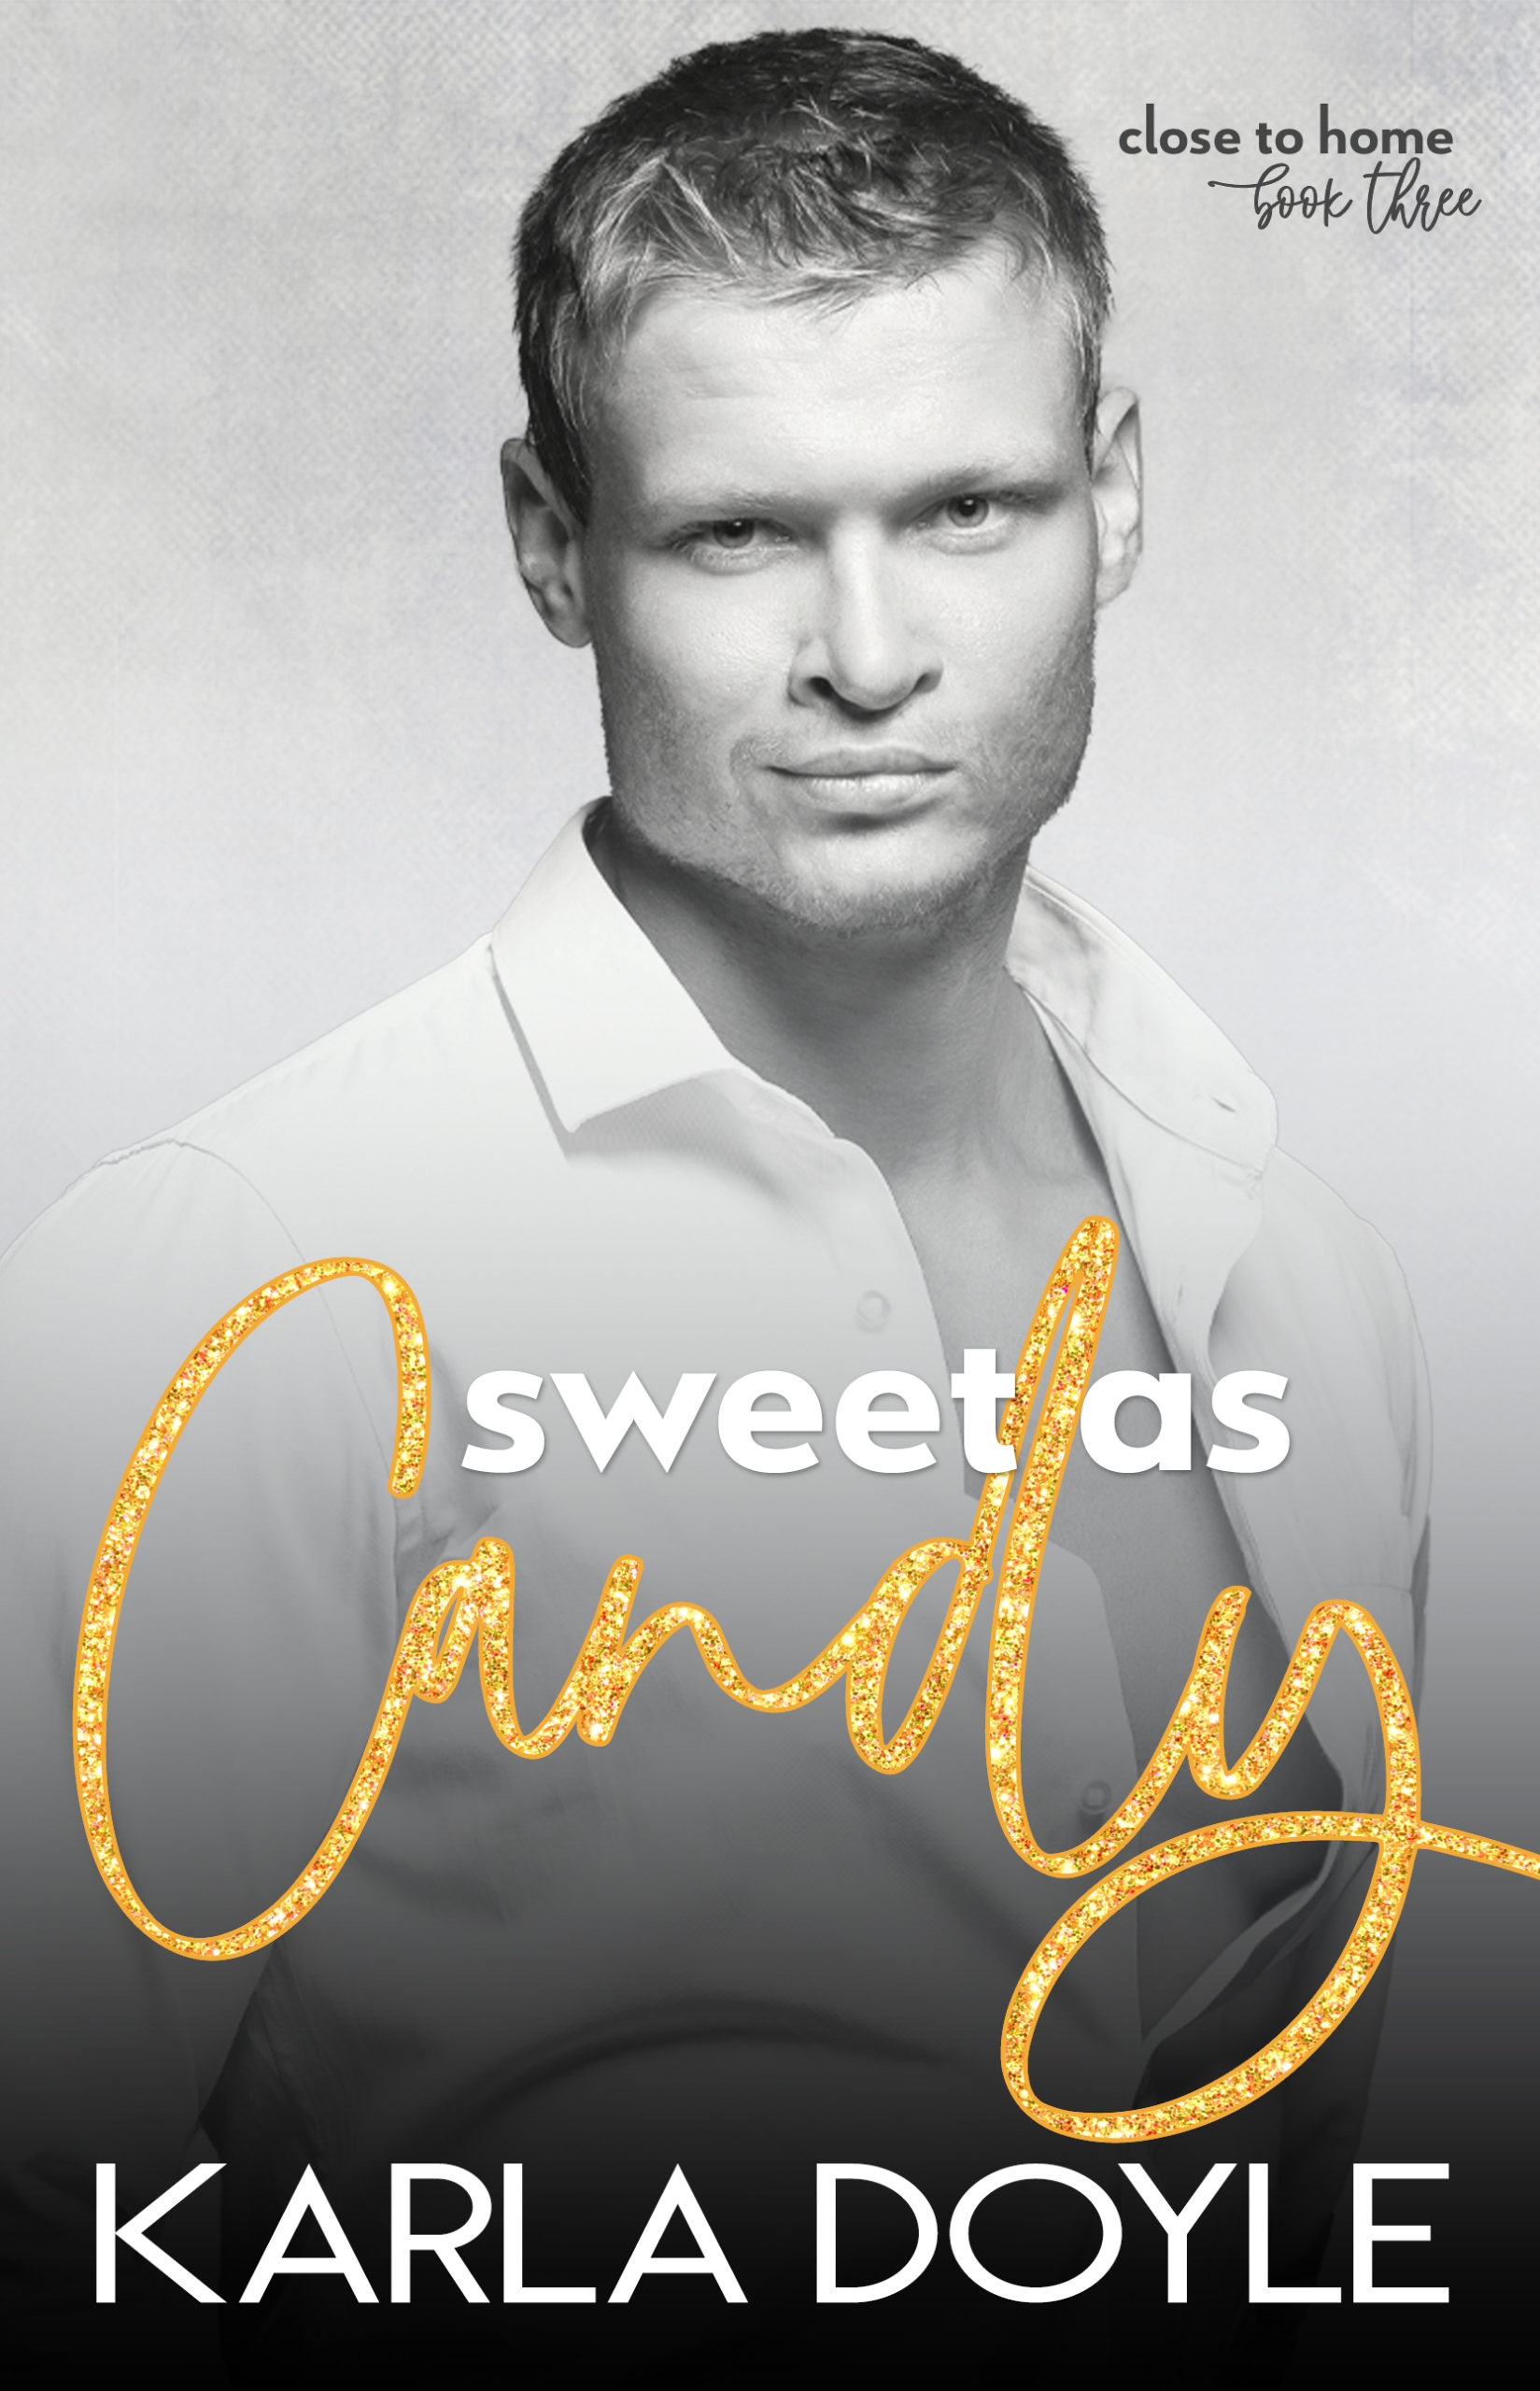 Sweet as Candy by Karla Doyle